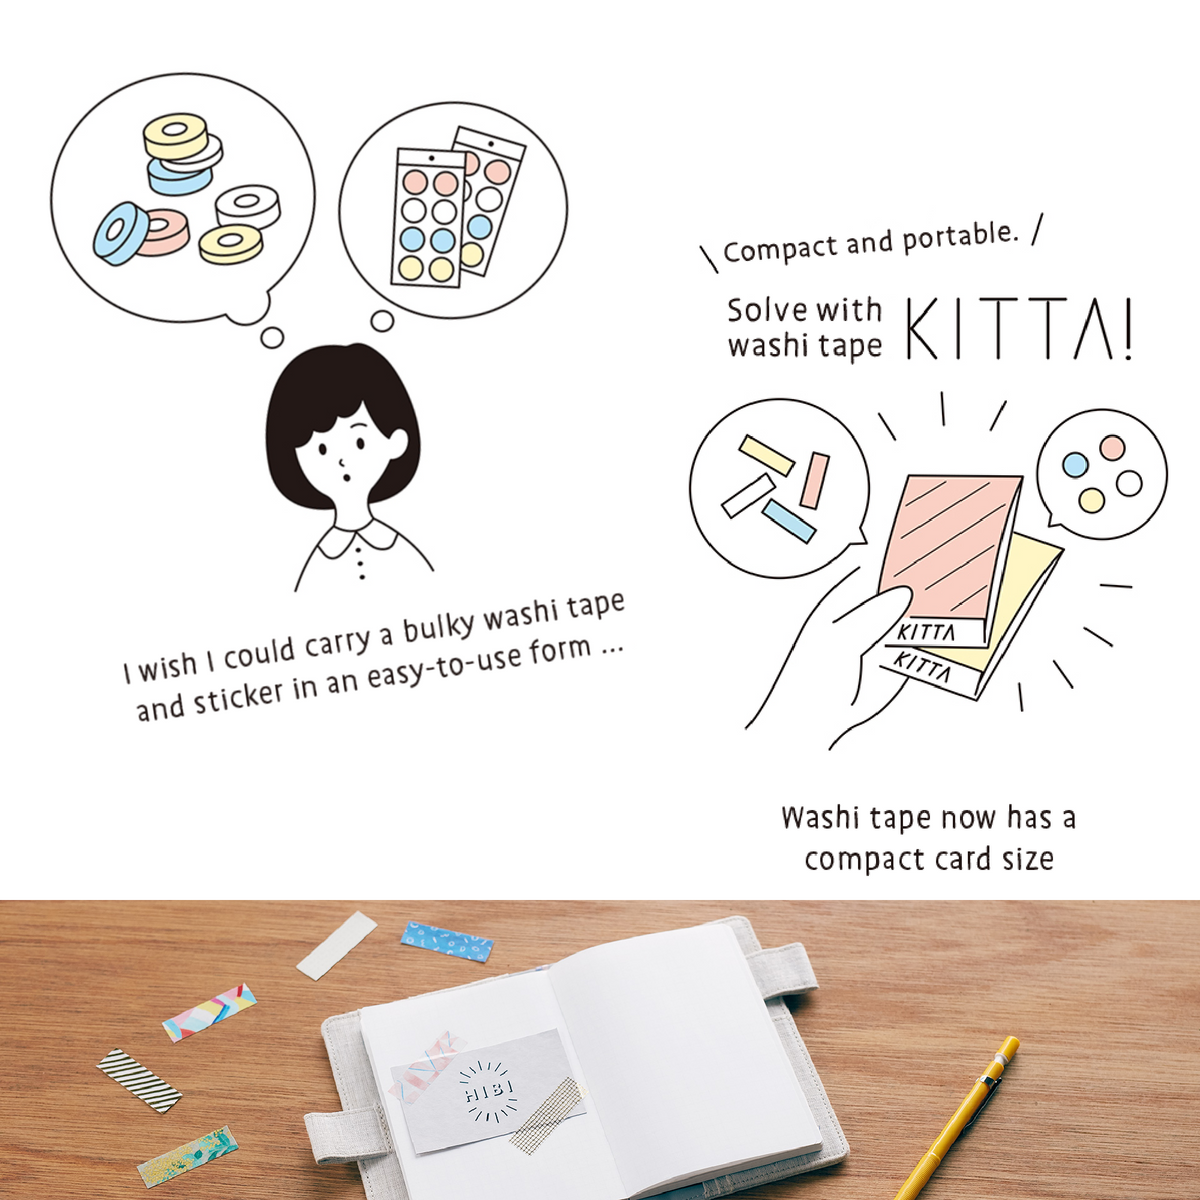 KITTA Washi Tape Tabs - Tile